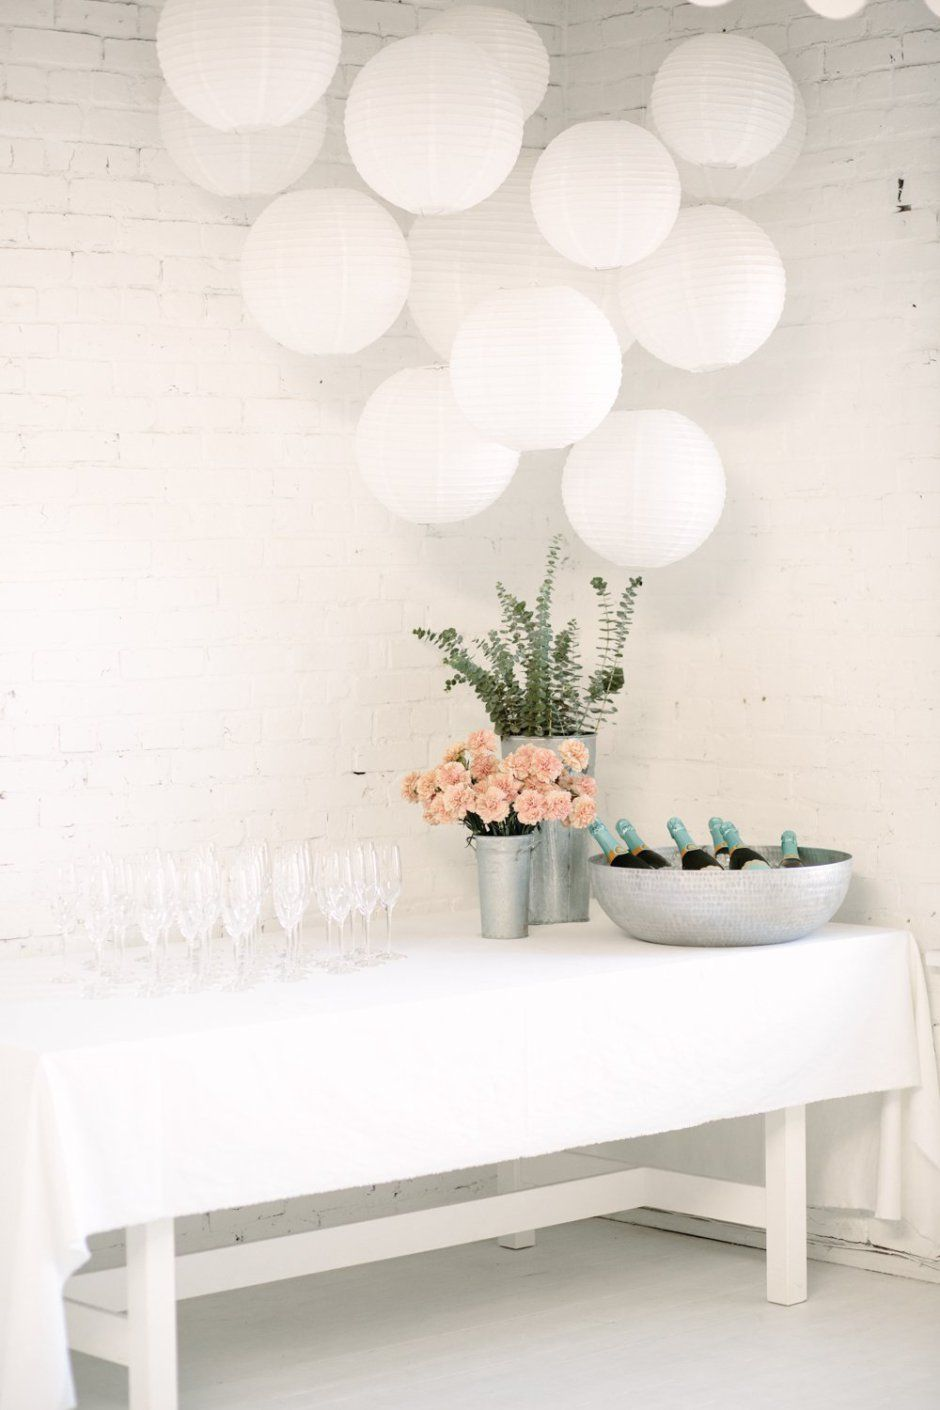 9 Easy Ways To Decorate For A Party Engagement Party Decorations